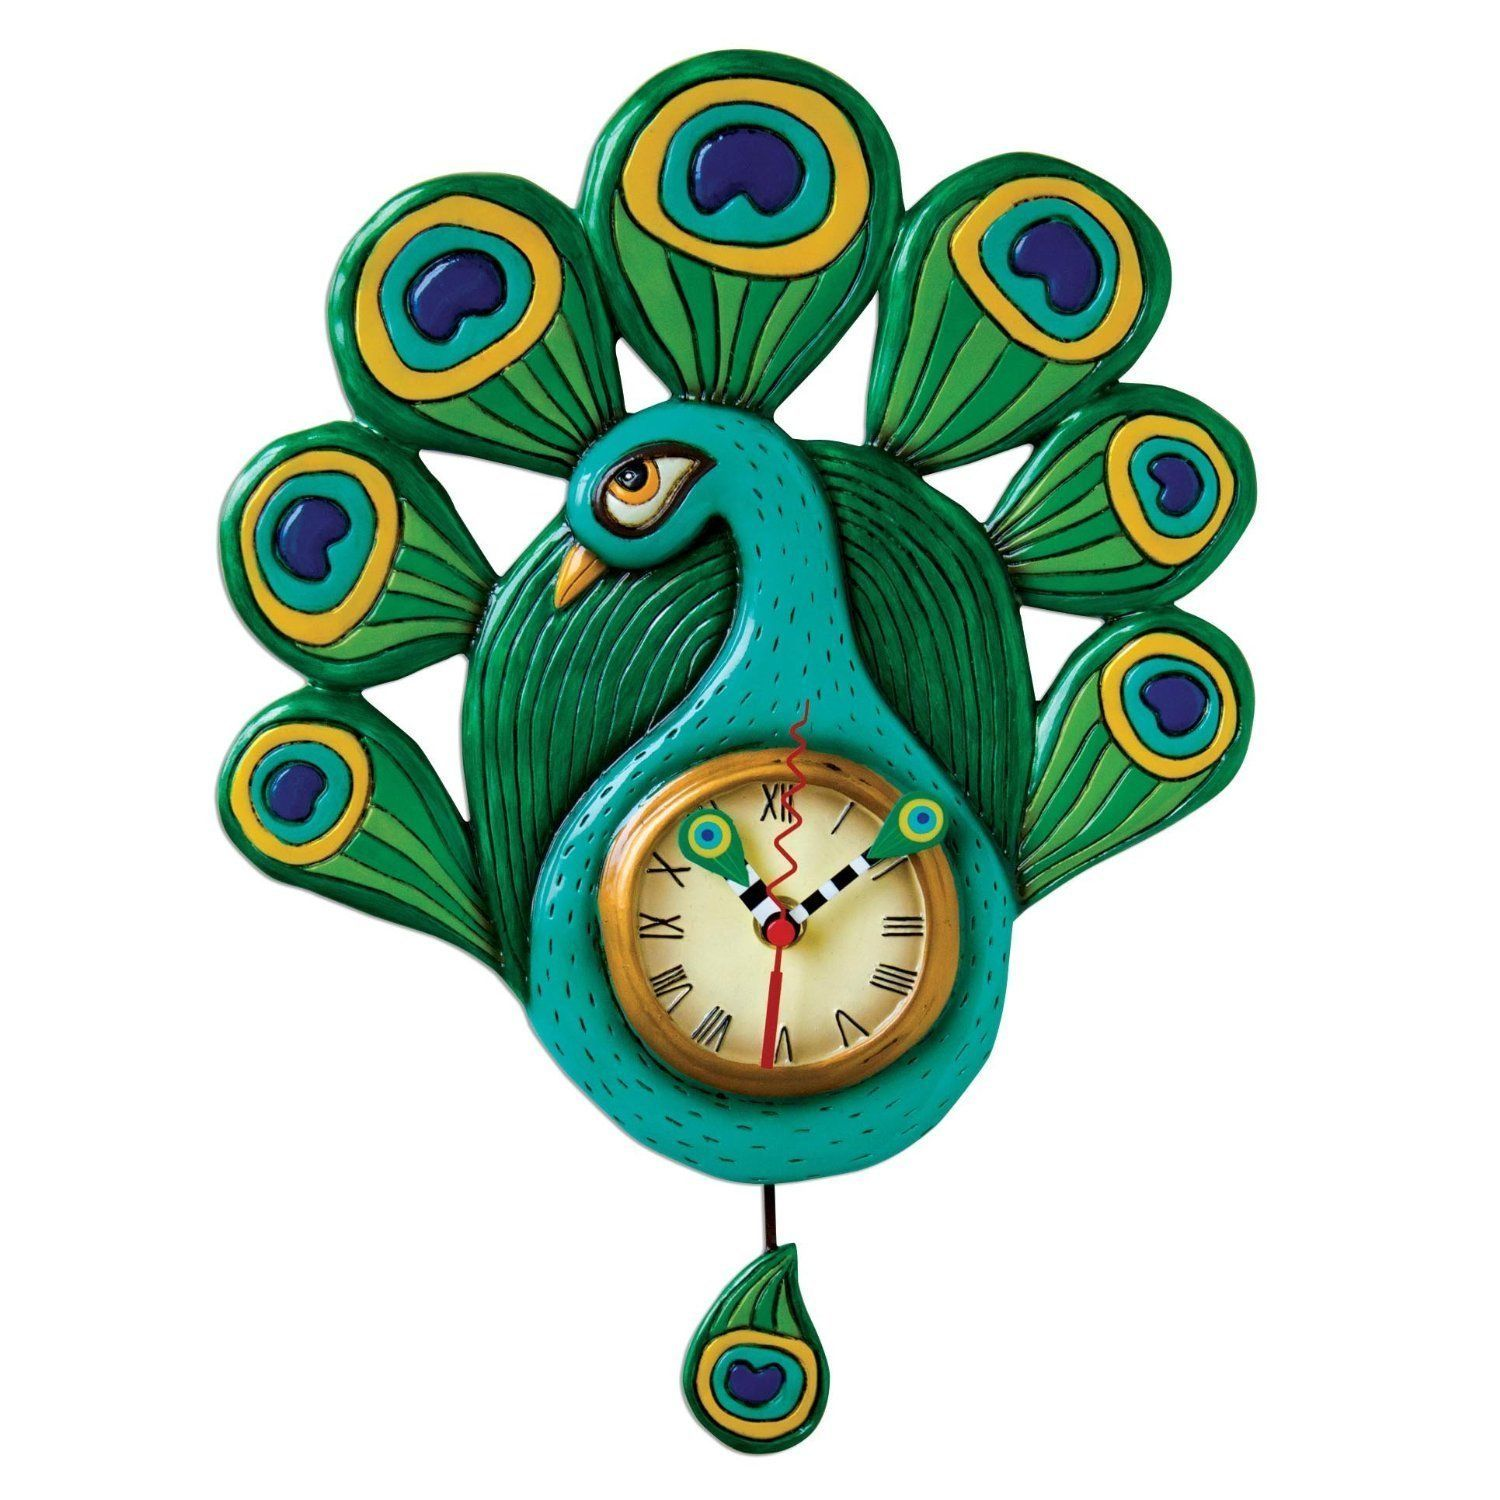 Allen Designs Pretty Peacock Pendulum Childs Kids Whimsical Wall Clock